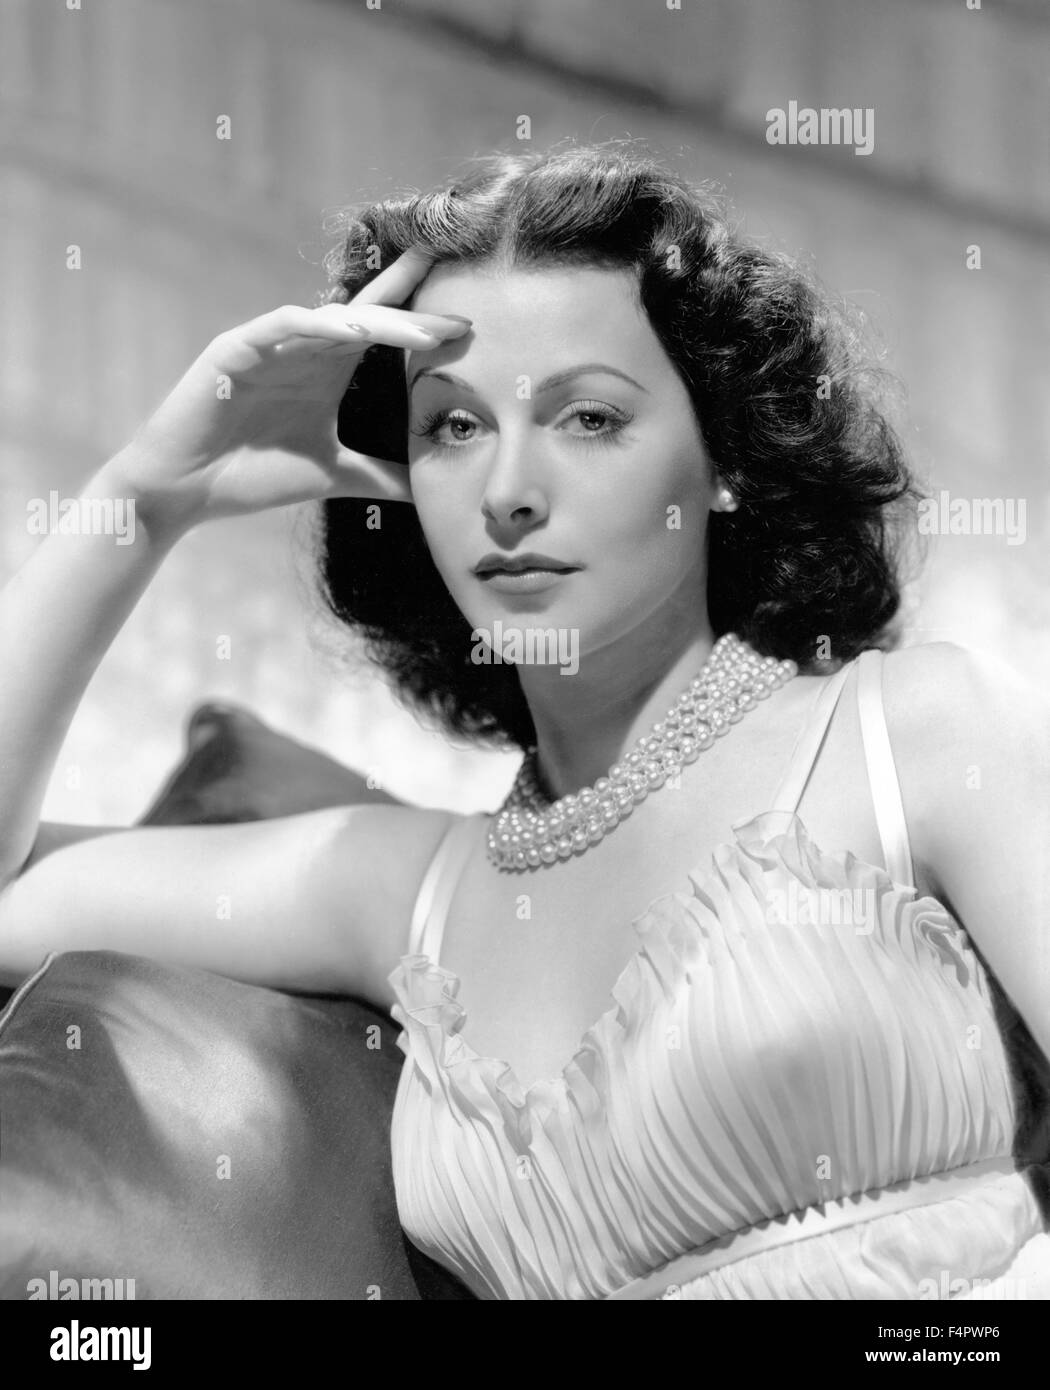 Hedy Lamarr / The Heavenly Body / 1943 directed by Alexander Hall  [Clarence Sinclair Bull / Metro-G] - Stock Image